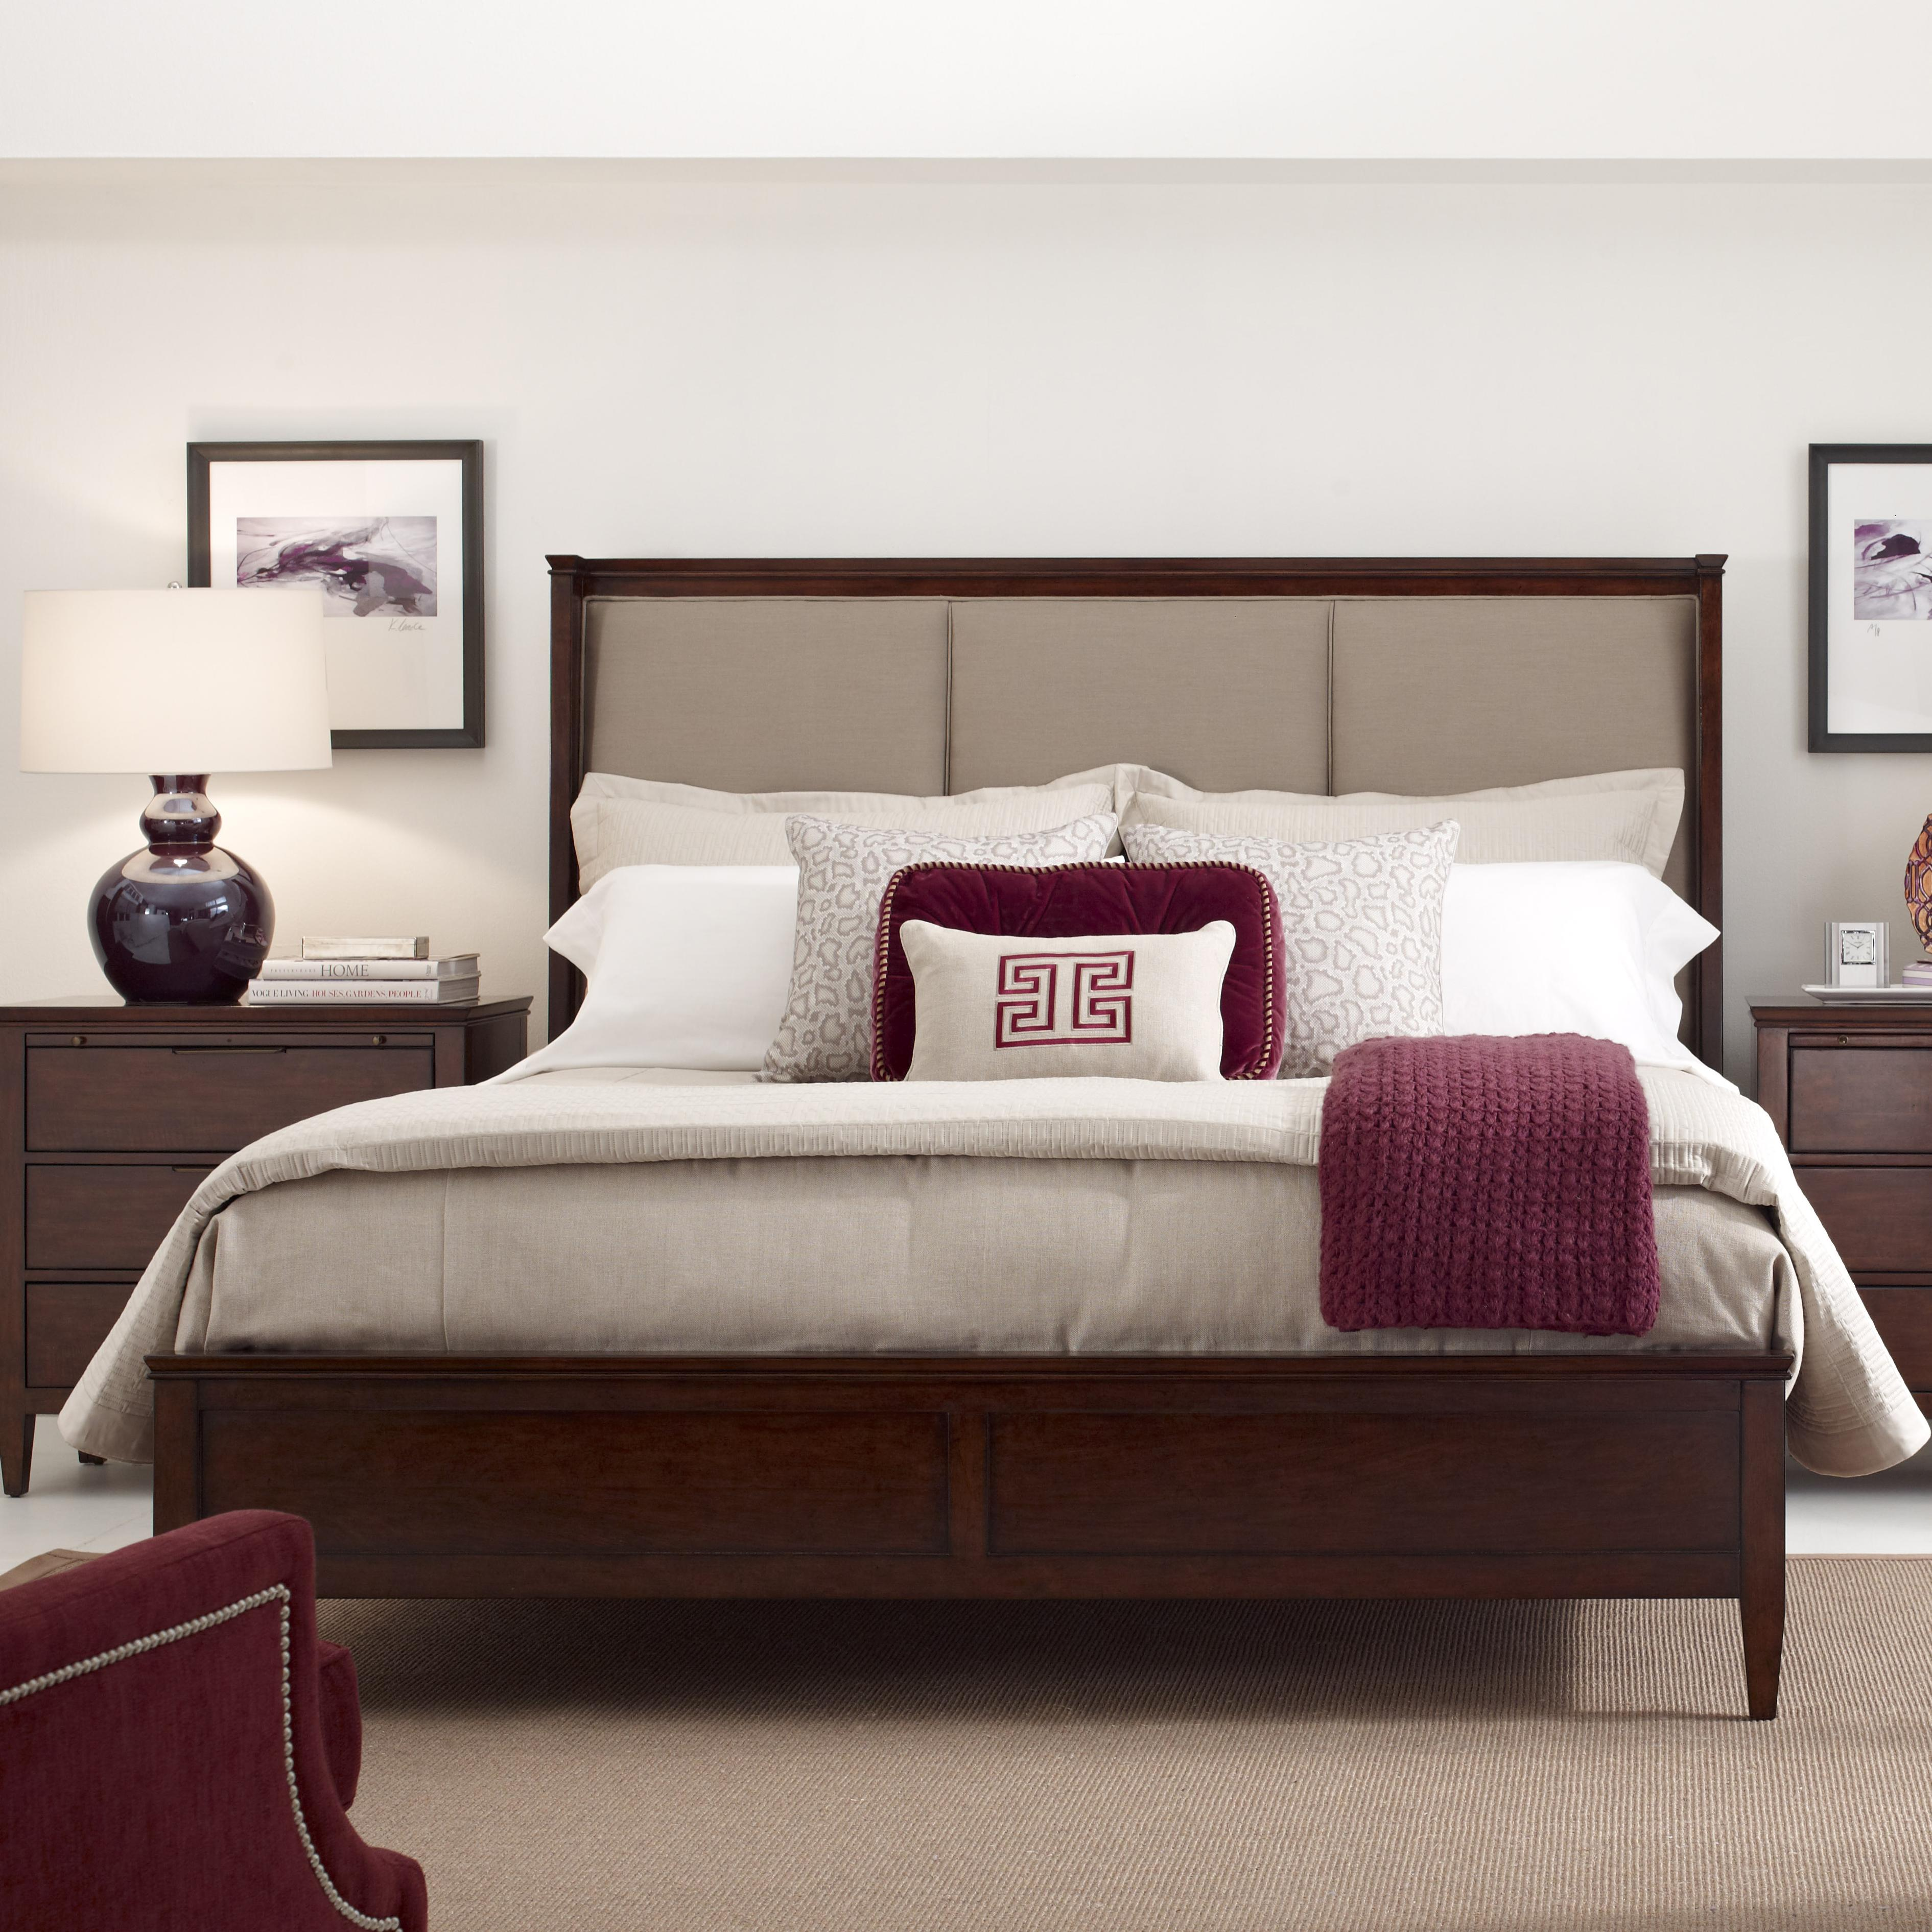 Elise Spectrum King Bed by Kincaid Furniture at Johnny Janosik